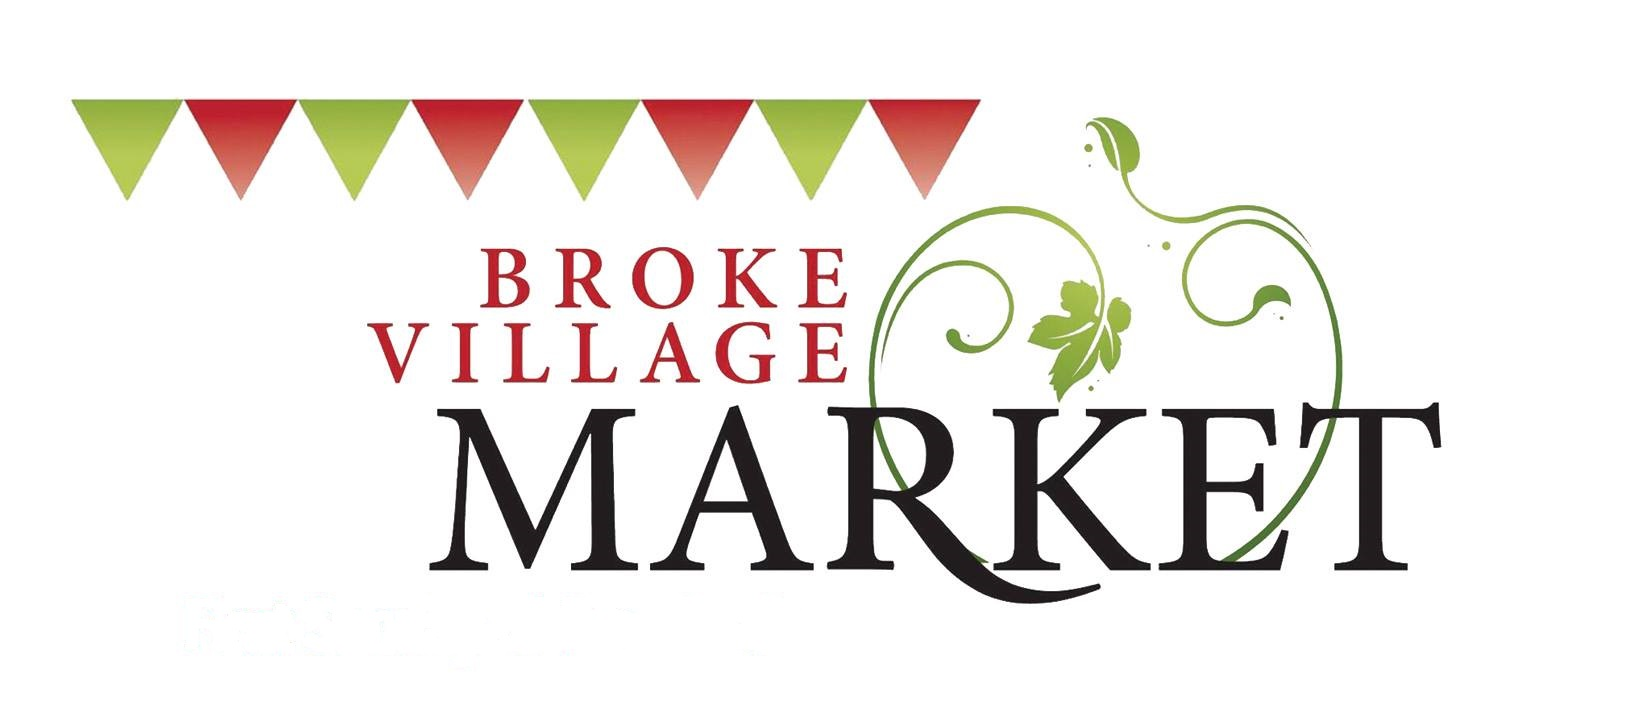 Broke Village Market